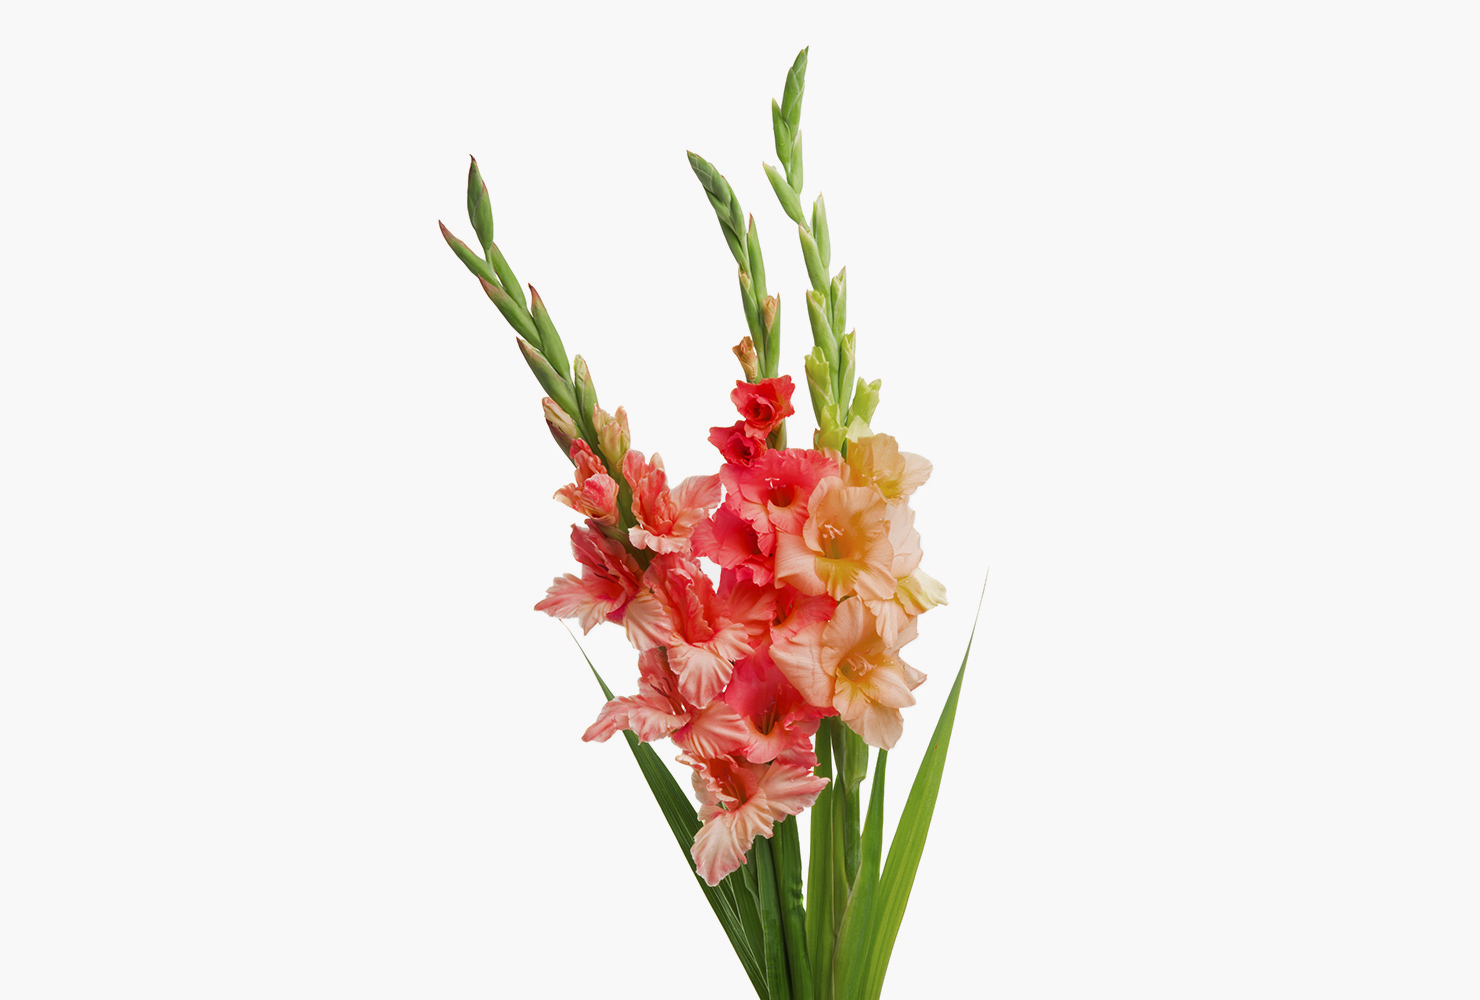 A bunch of gladiolus flowers.